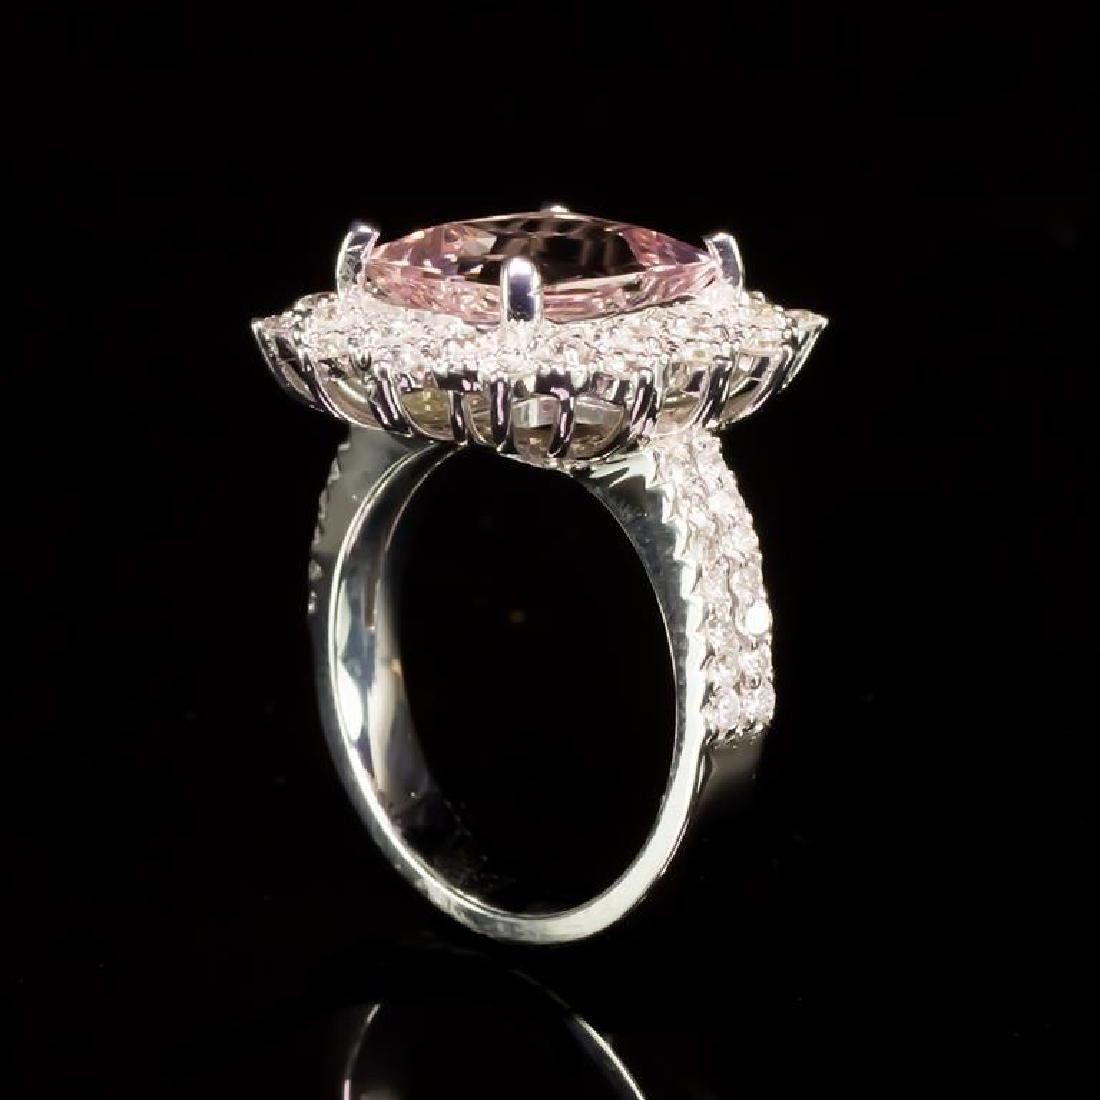 14K Gold 3.79ct Morganite 0.92ct Diamond Ring - 3